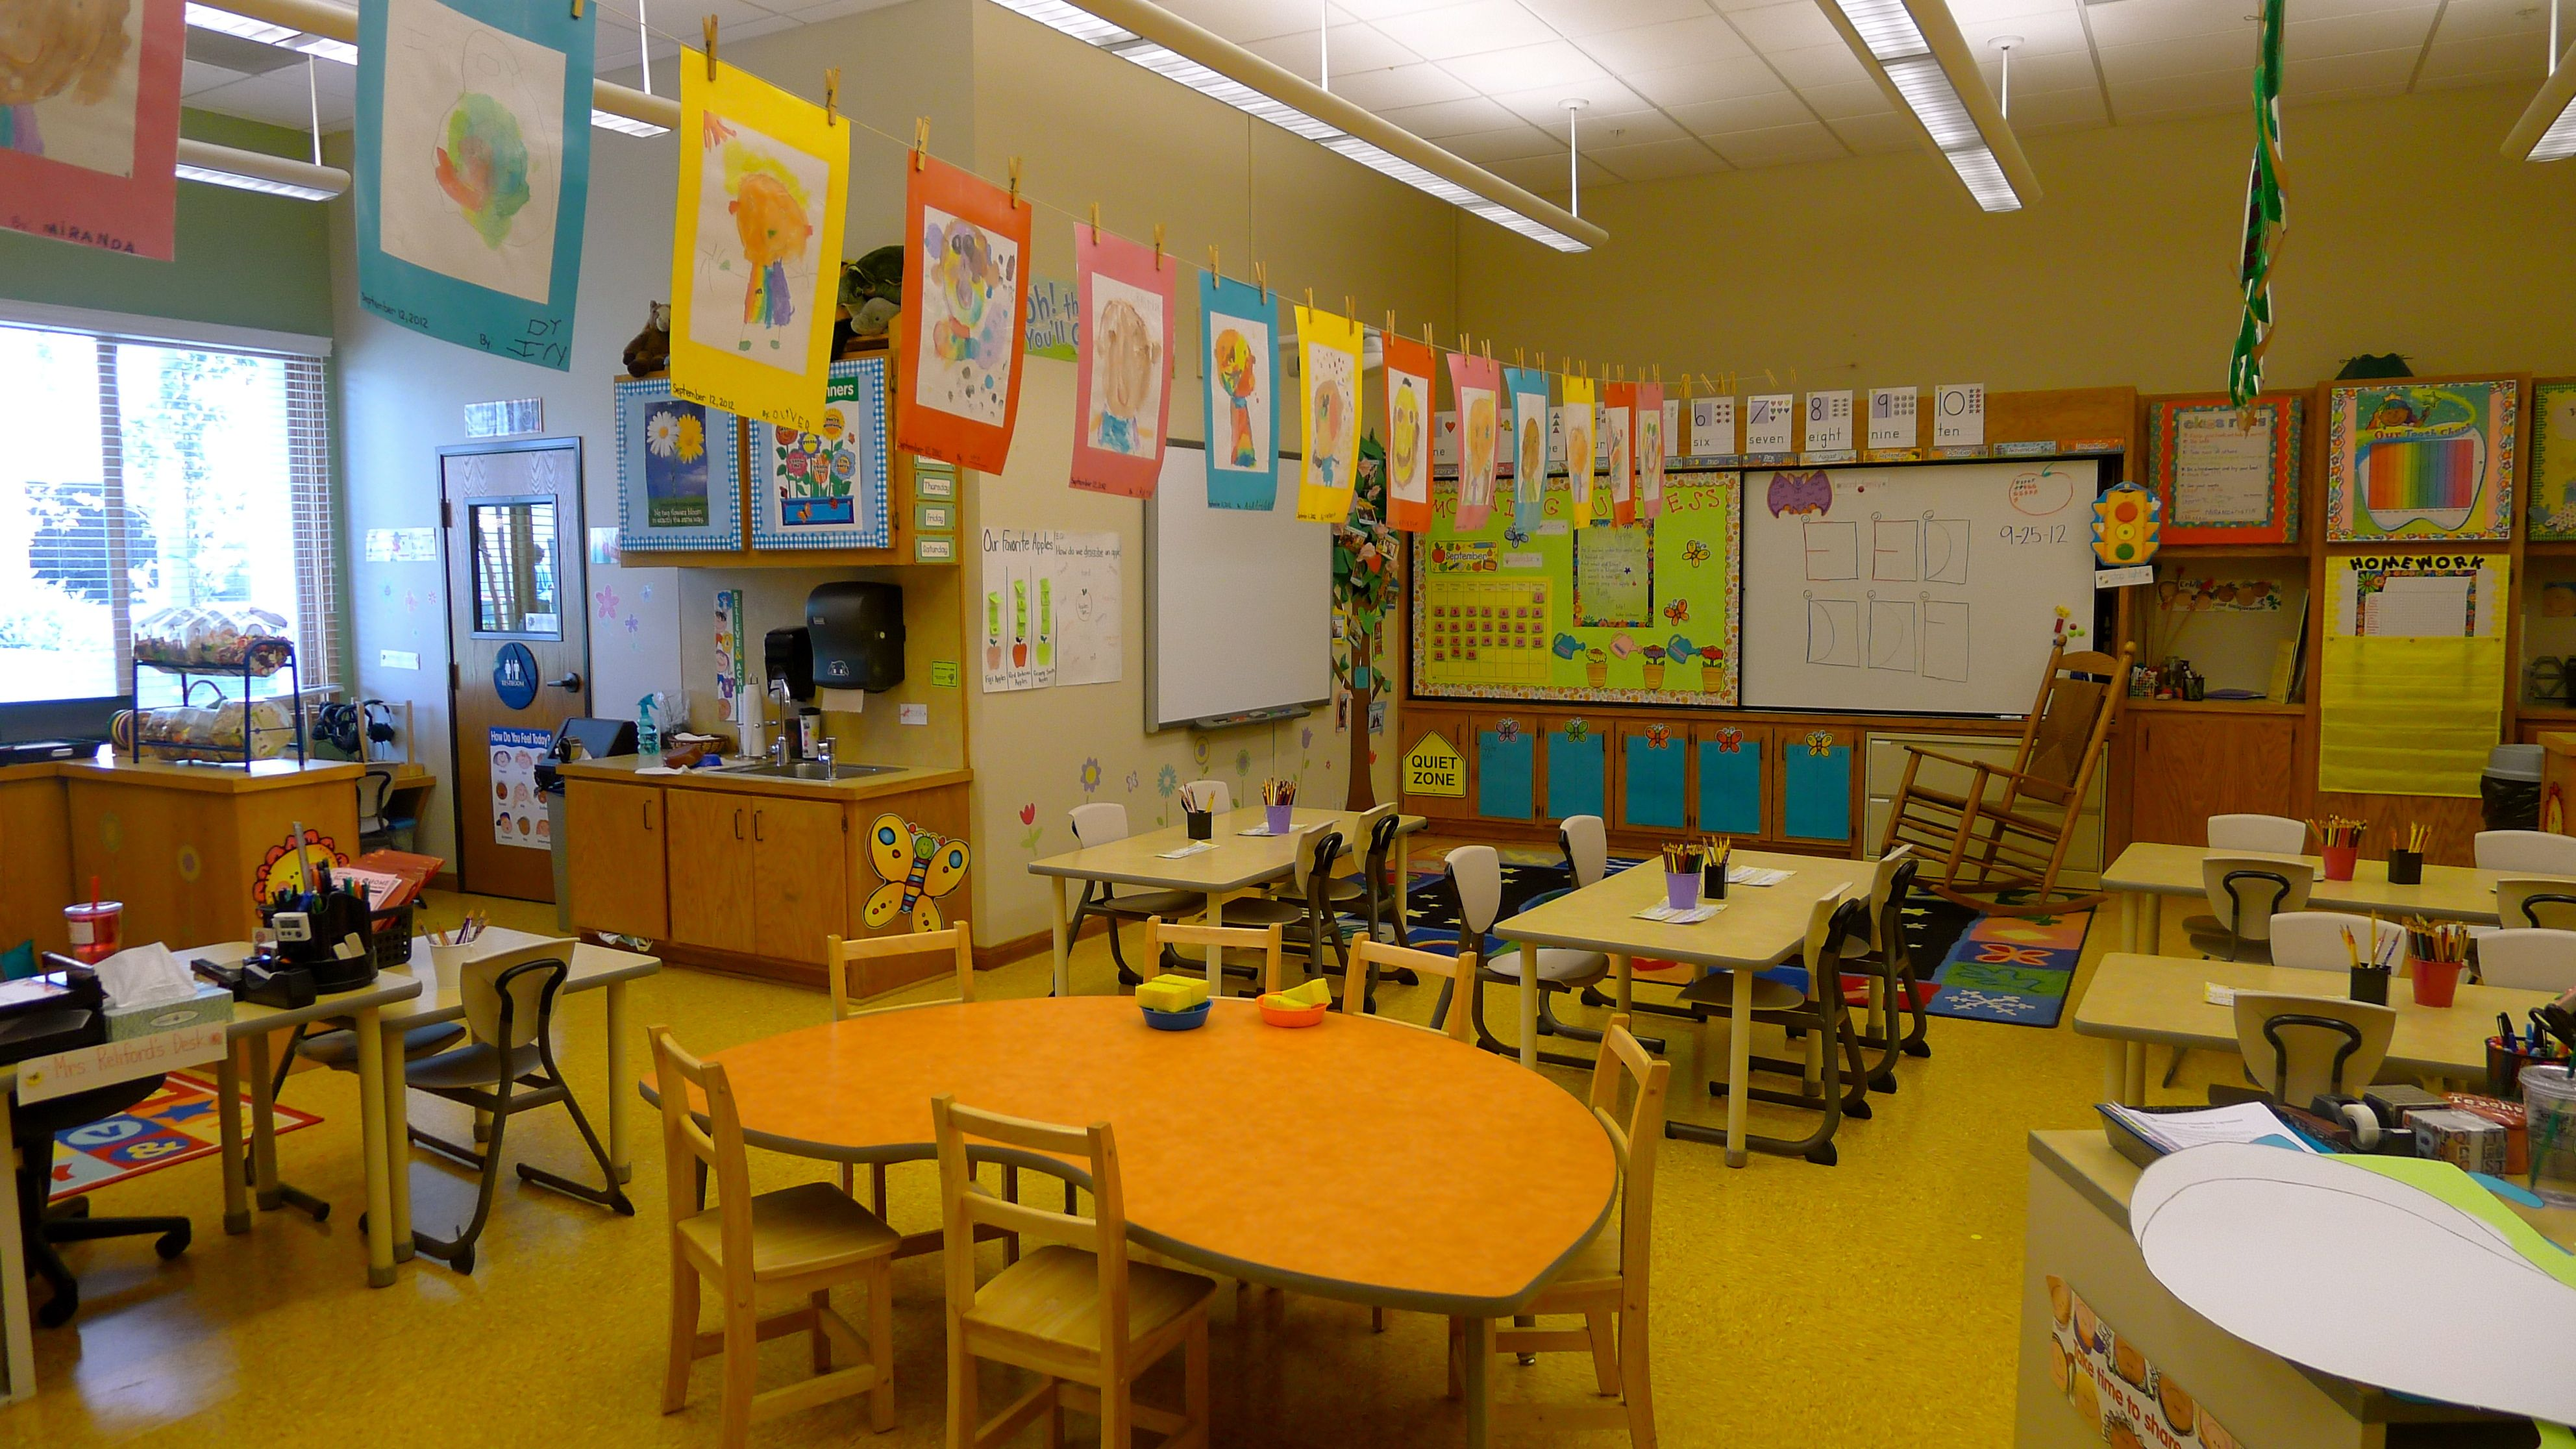 Turning Point School A Vocabulary Of Visuals Academics